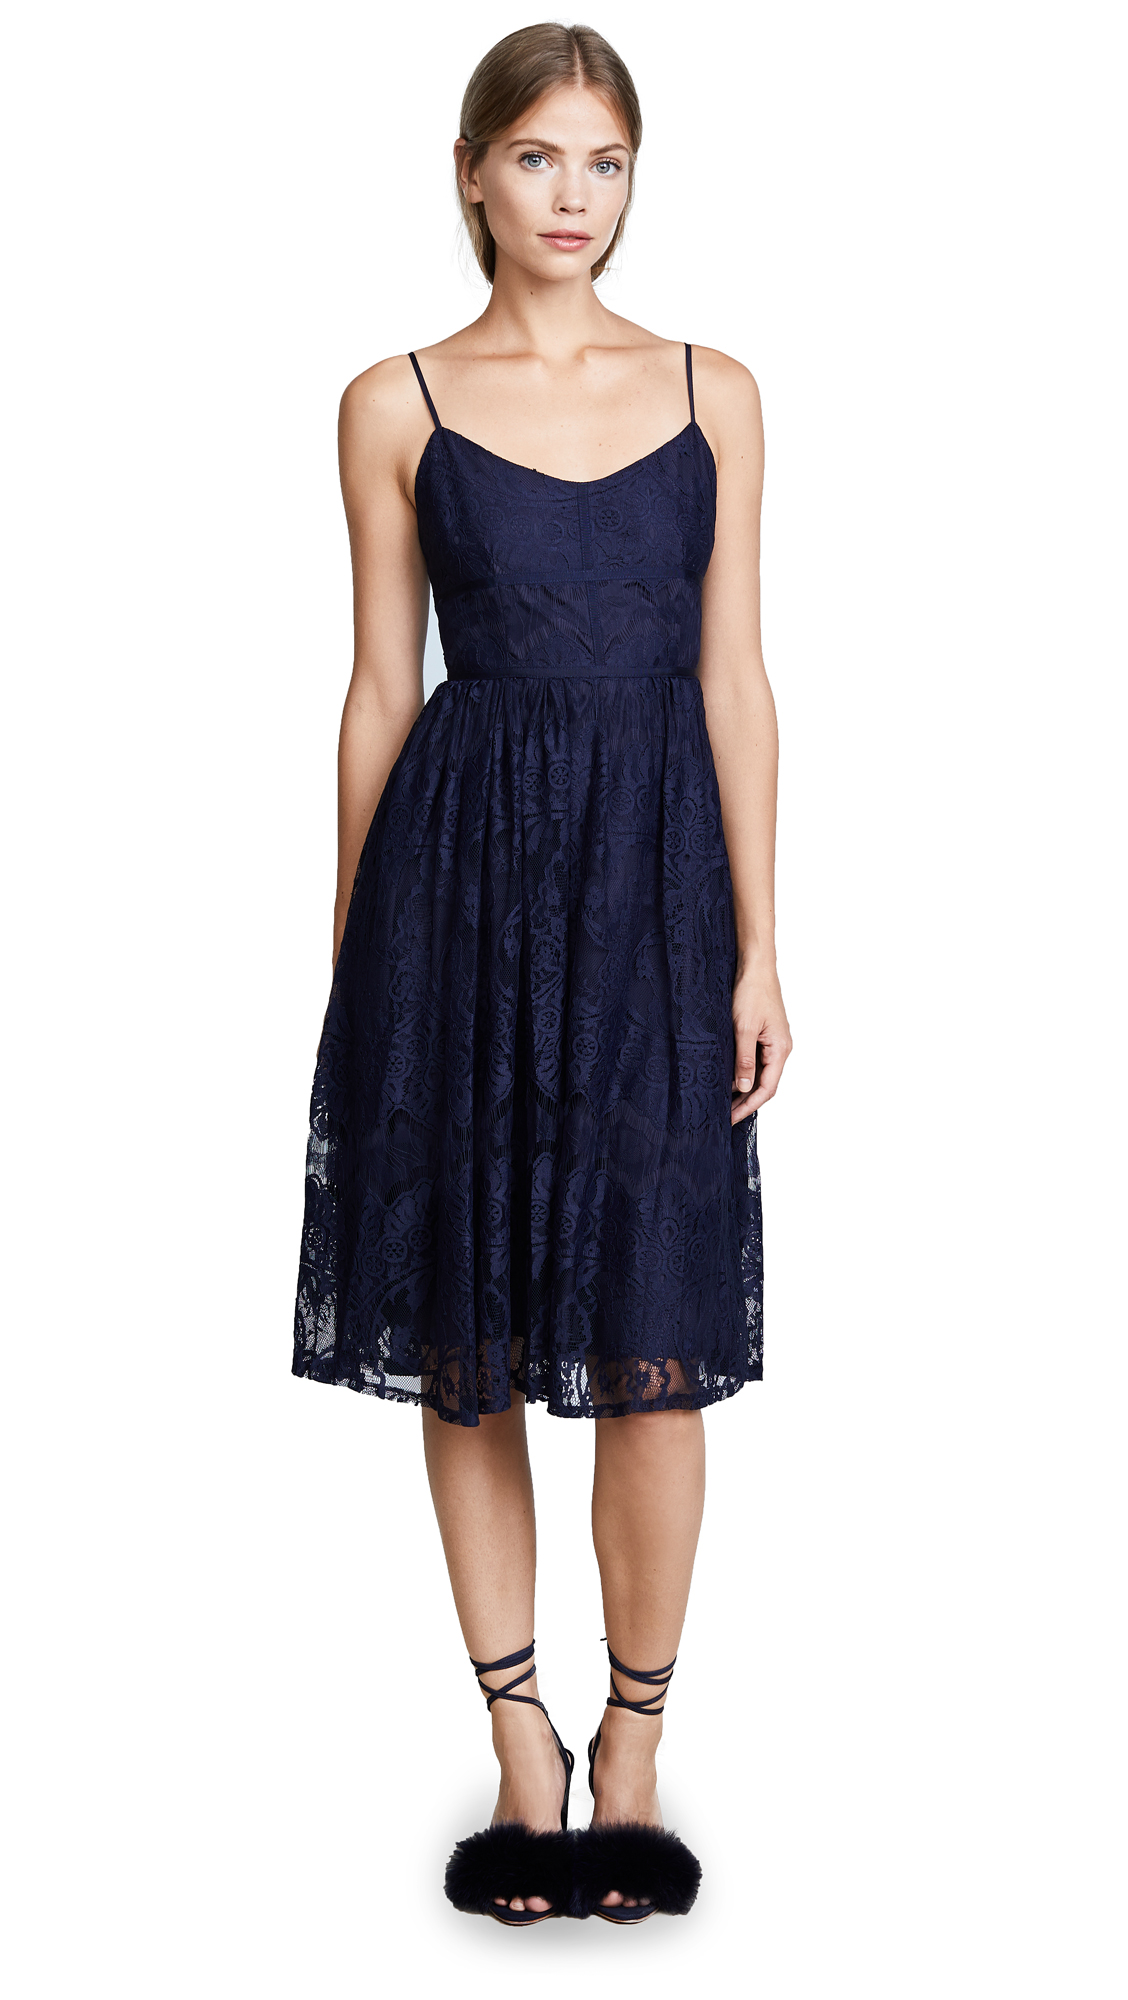 BB Dakota Galena Lace Dress - Navy